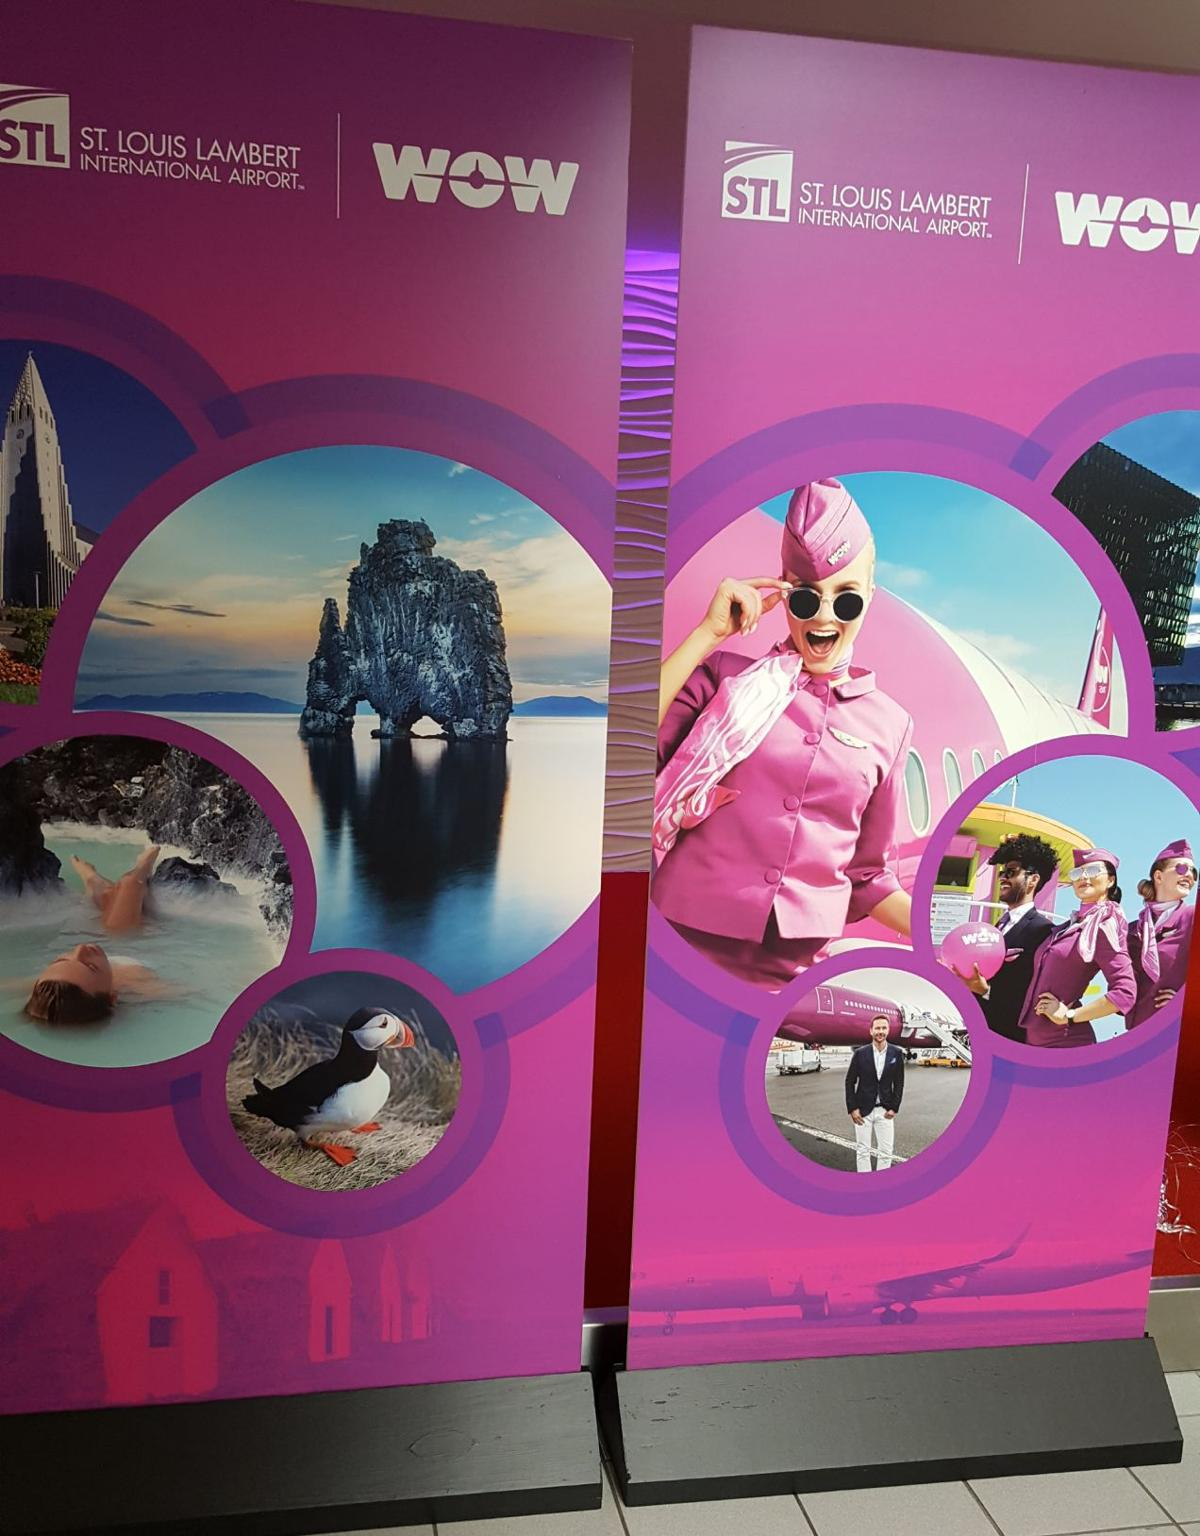 Promotional displays for Wow flights from St. Louis to Iceland